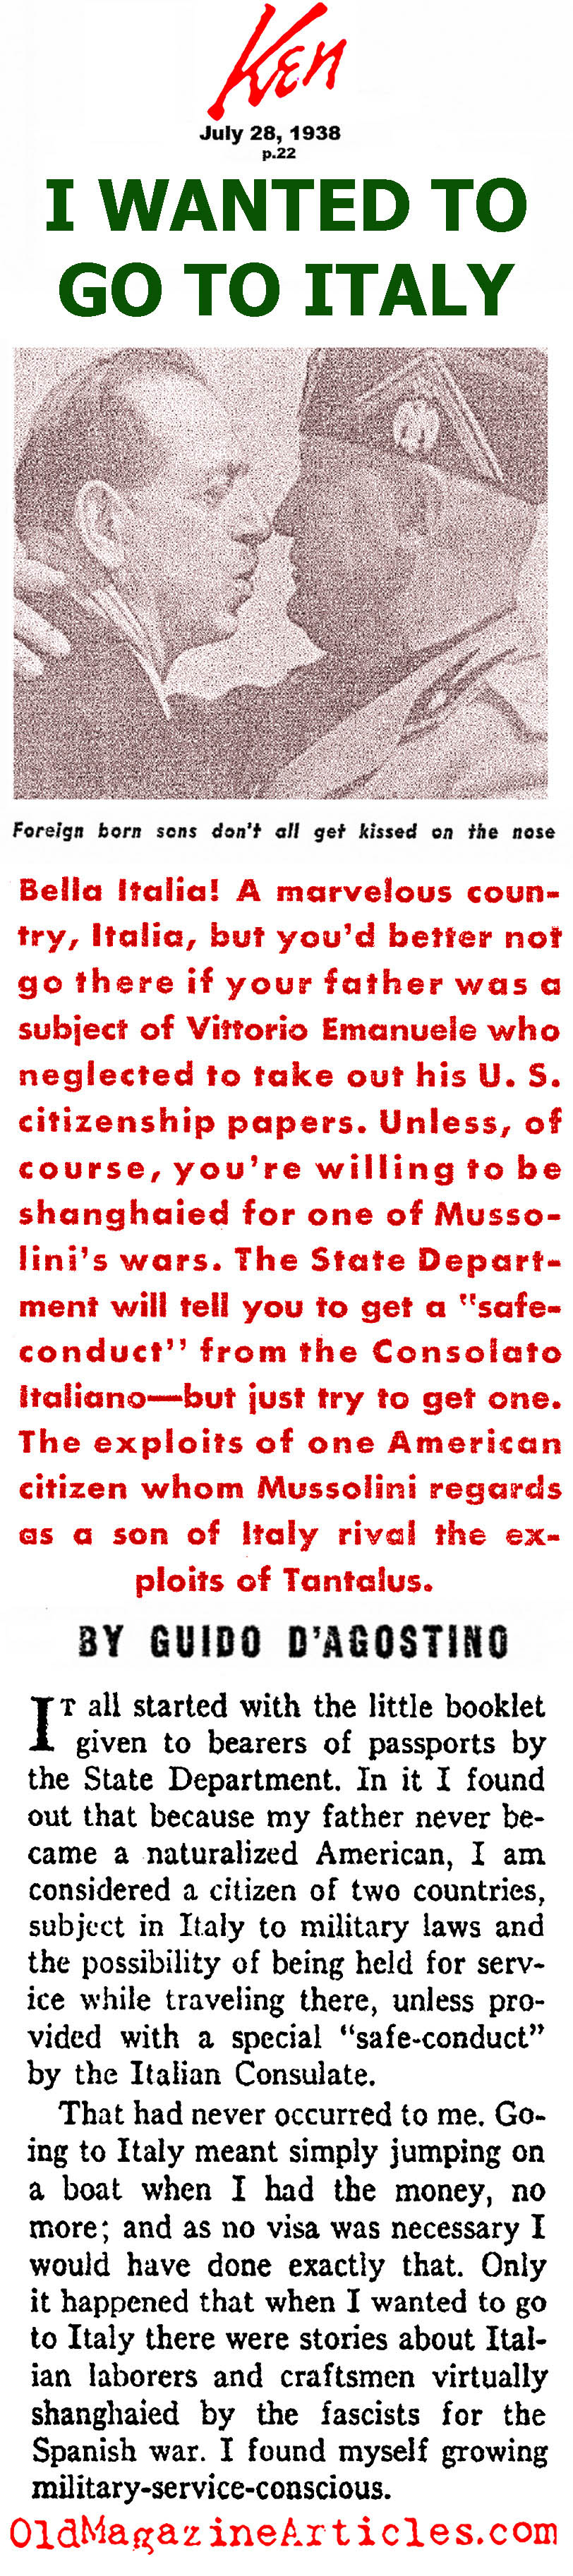 Mussolini and the Italian Expatriots (Ken Magazine, 1938)